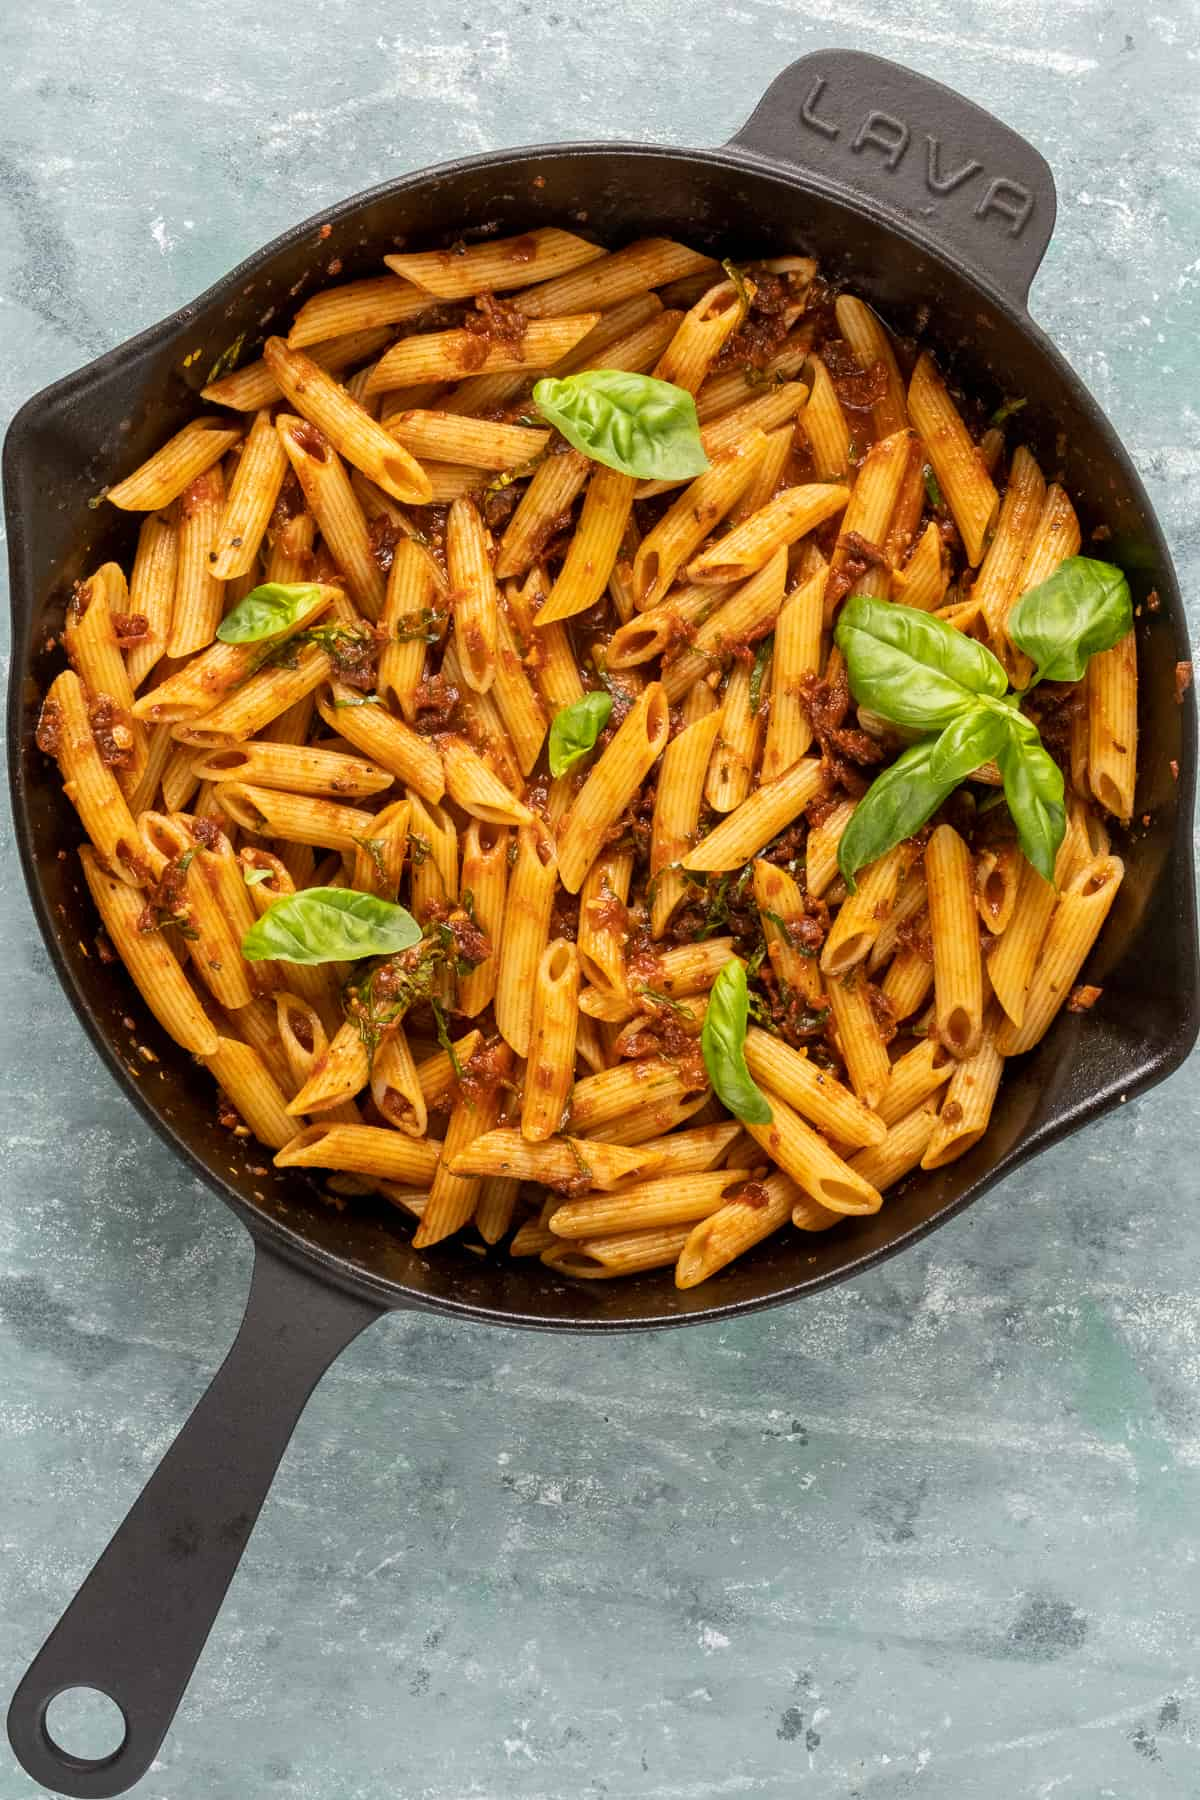 Pasta with sun-dried tomato sauce topped with basil leaves in a cast iron skillet.